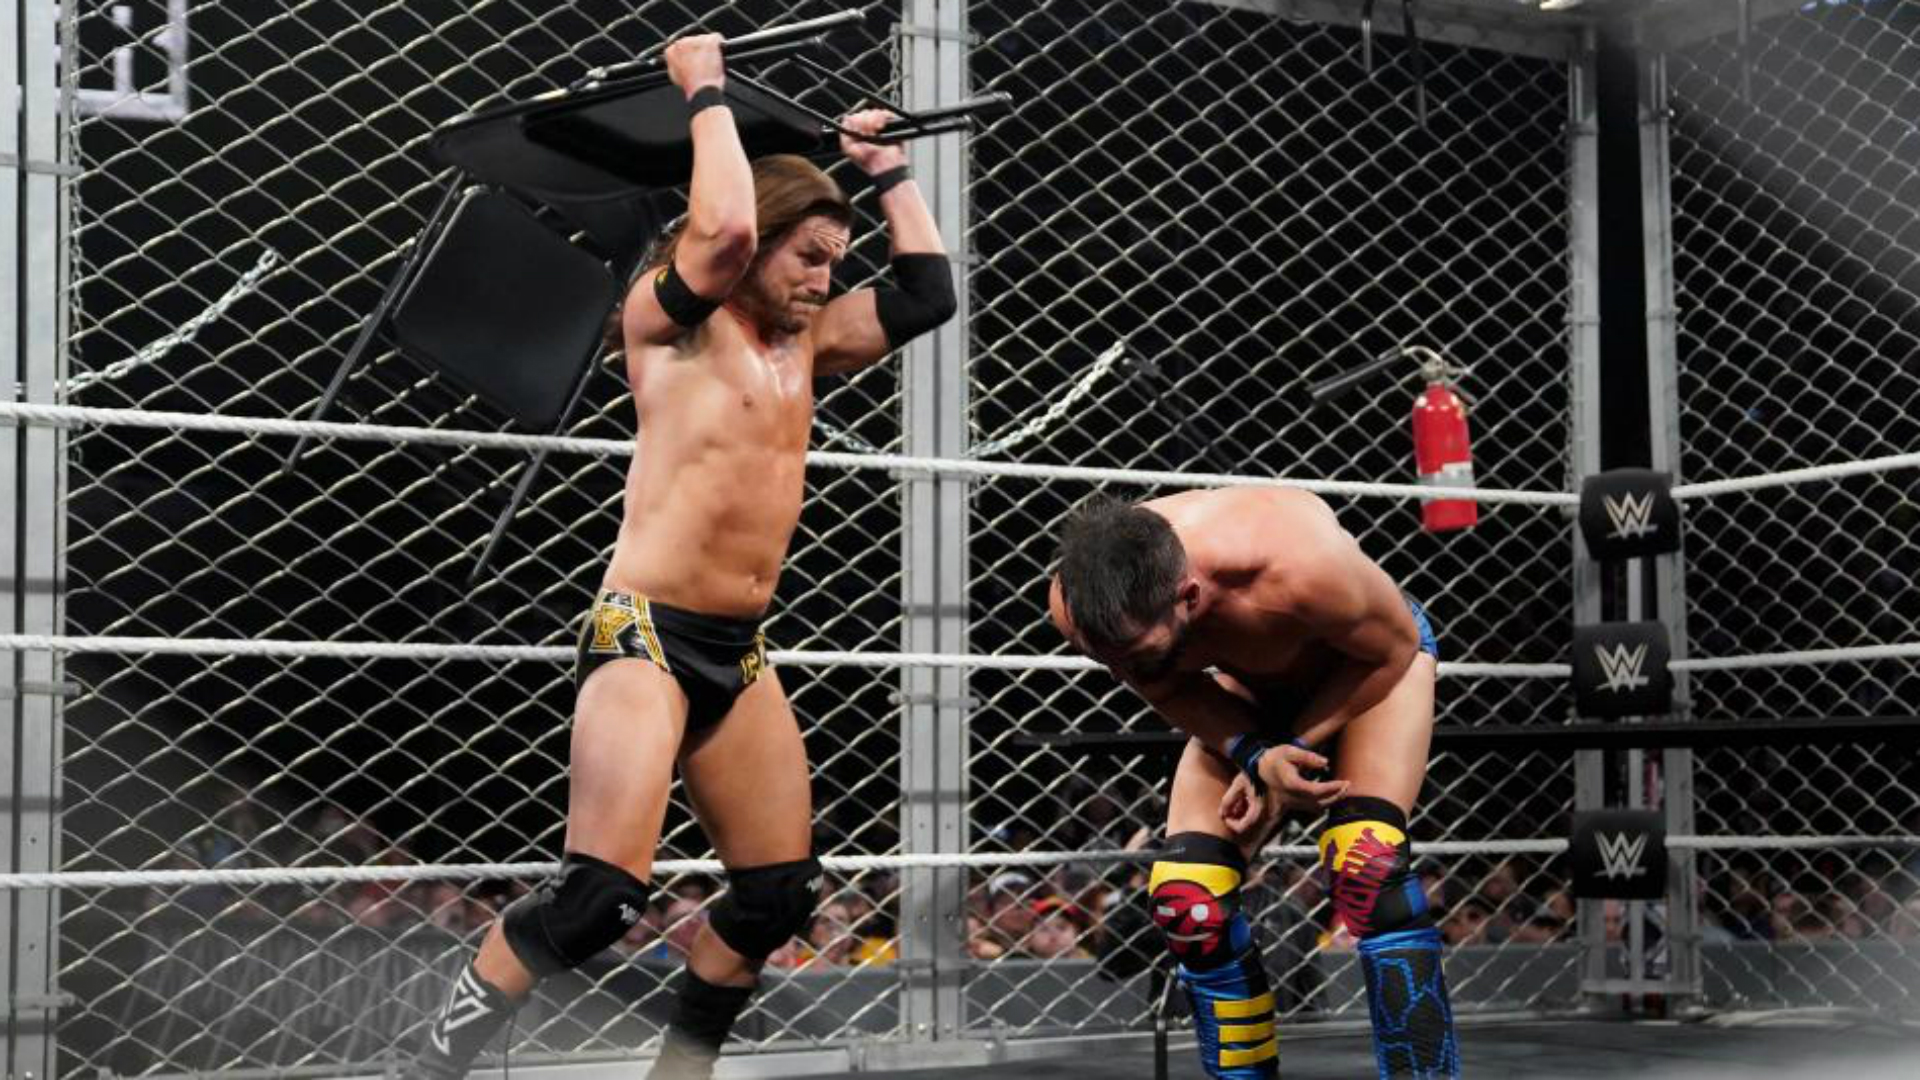 WWE NXT Takeover: Toronto analysis and match grades